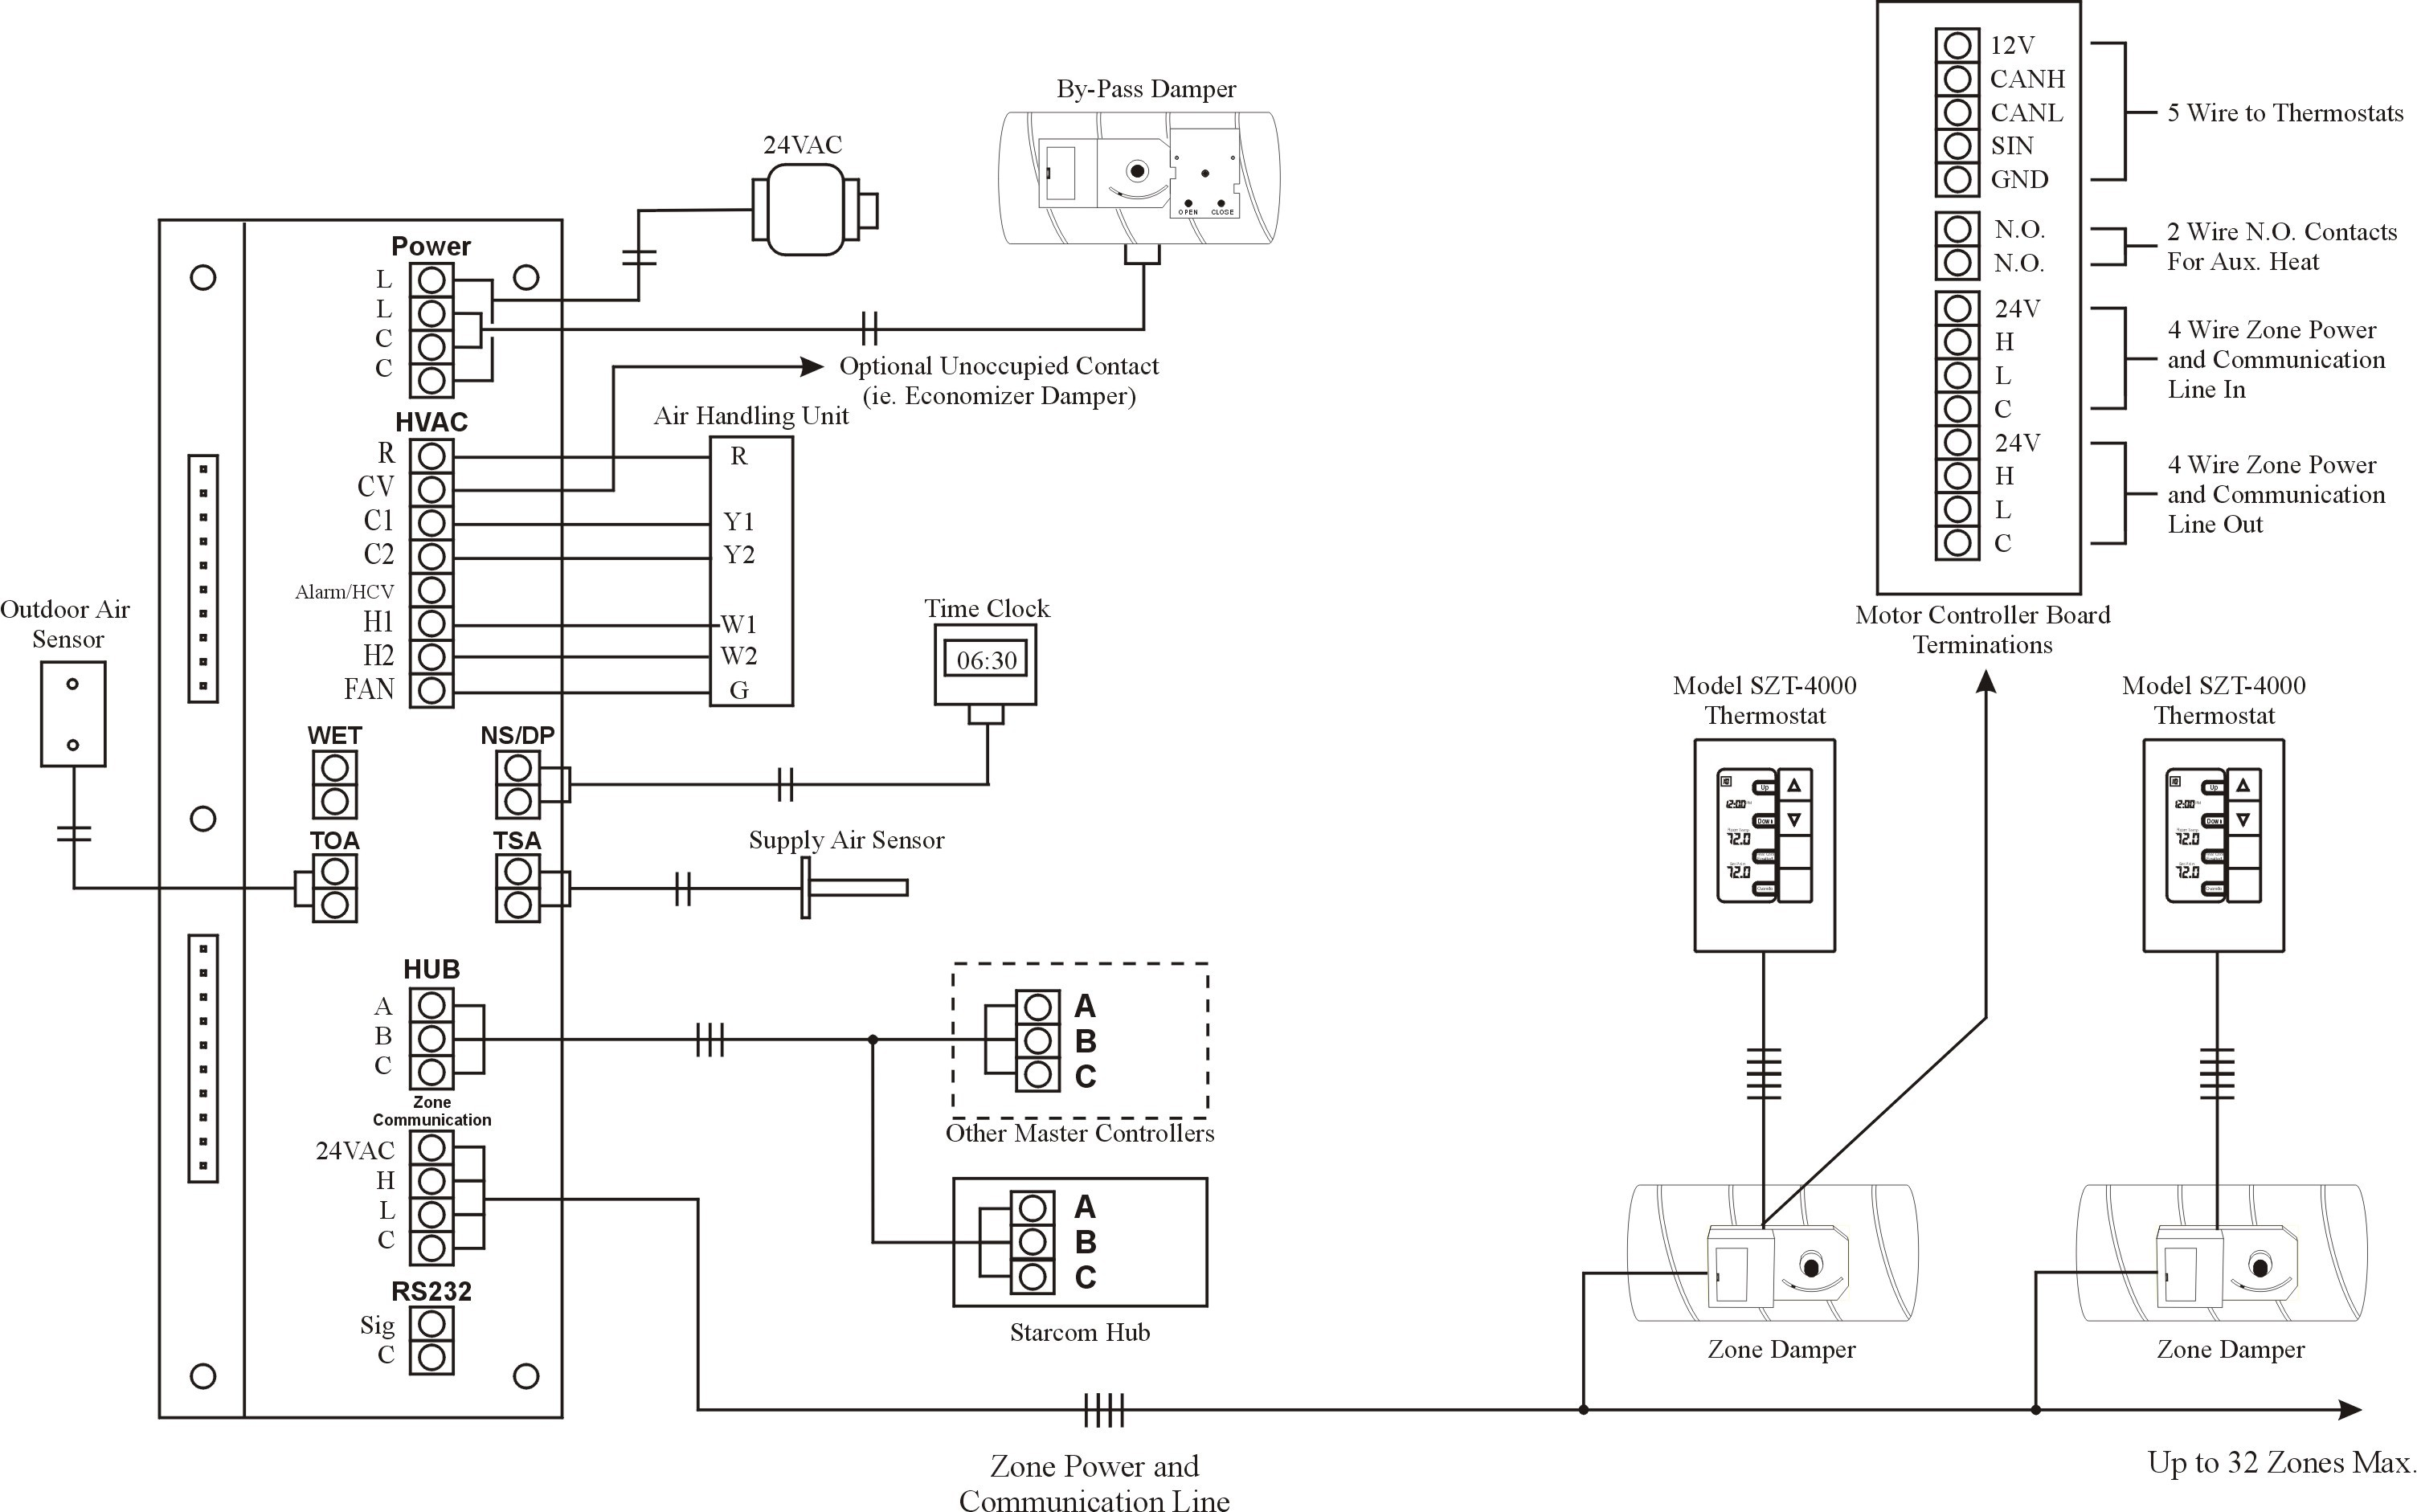 Wiring Diagram Fire Alarm System